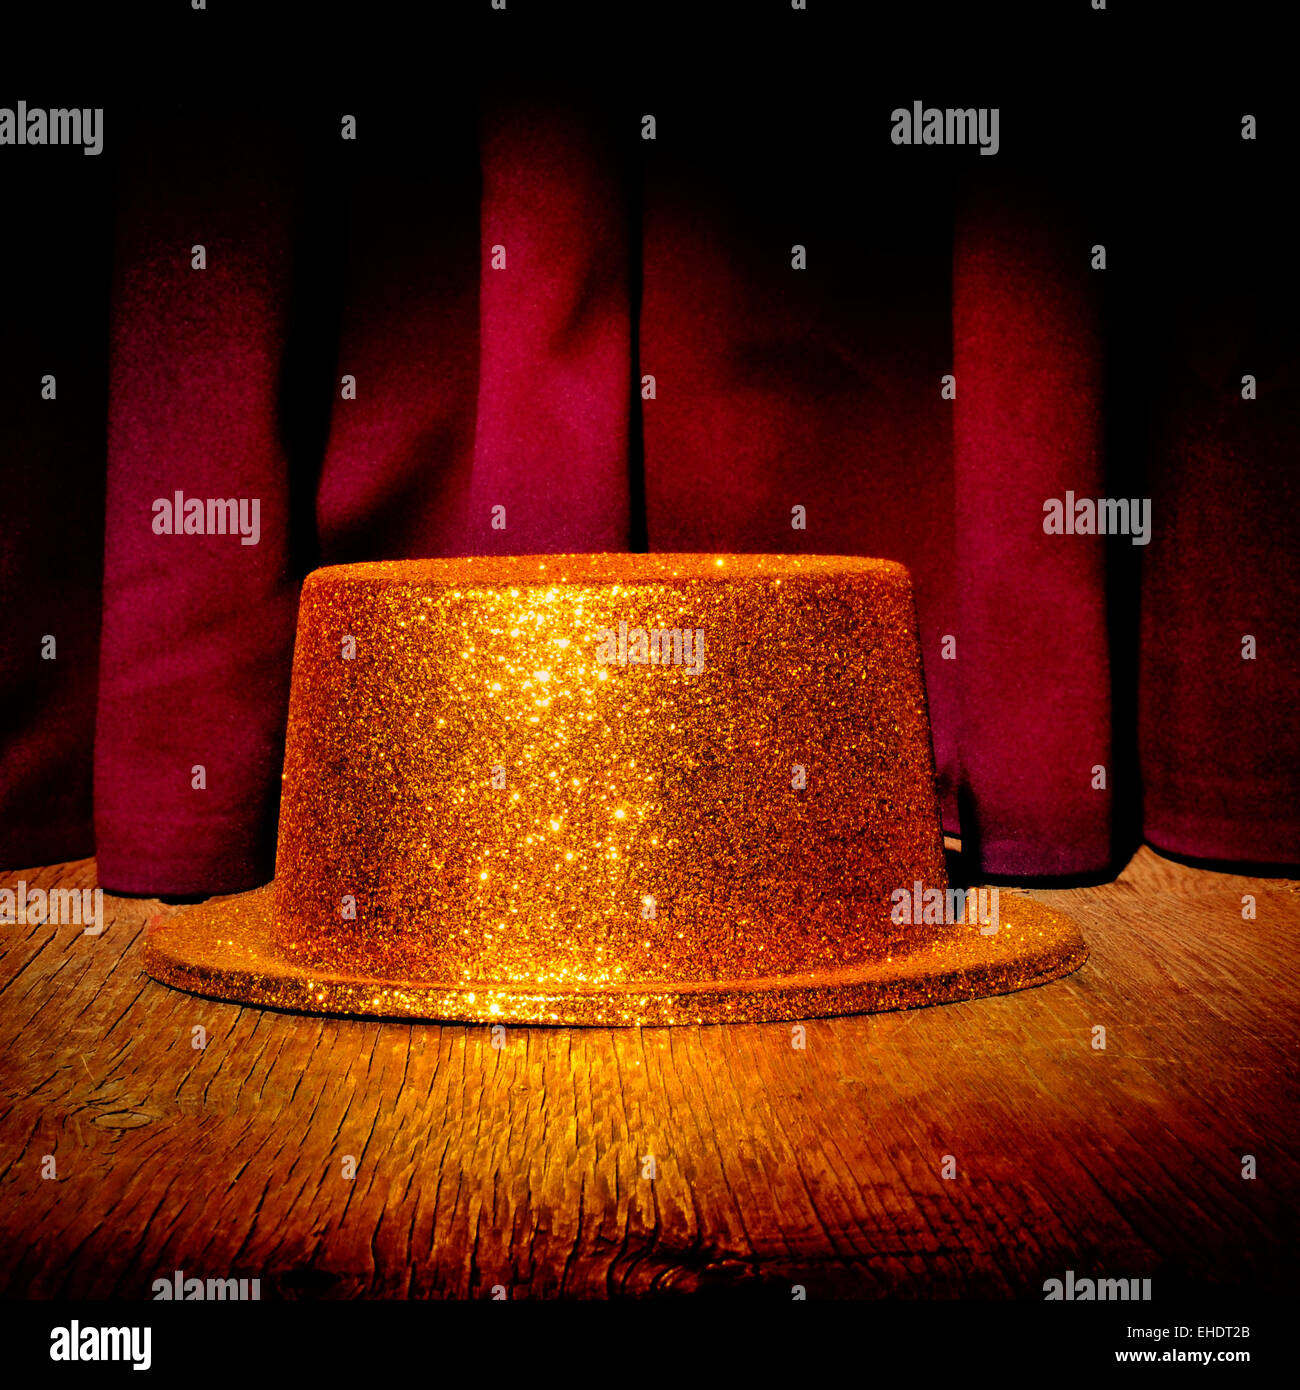 a golden top hat on a stage with the theater curtain in the background - Stock Image